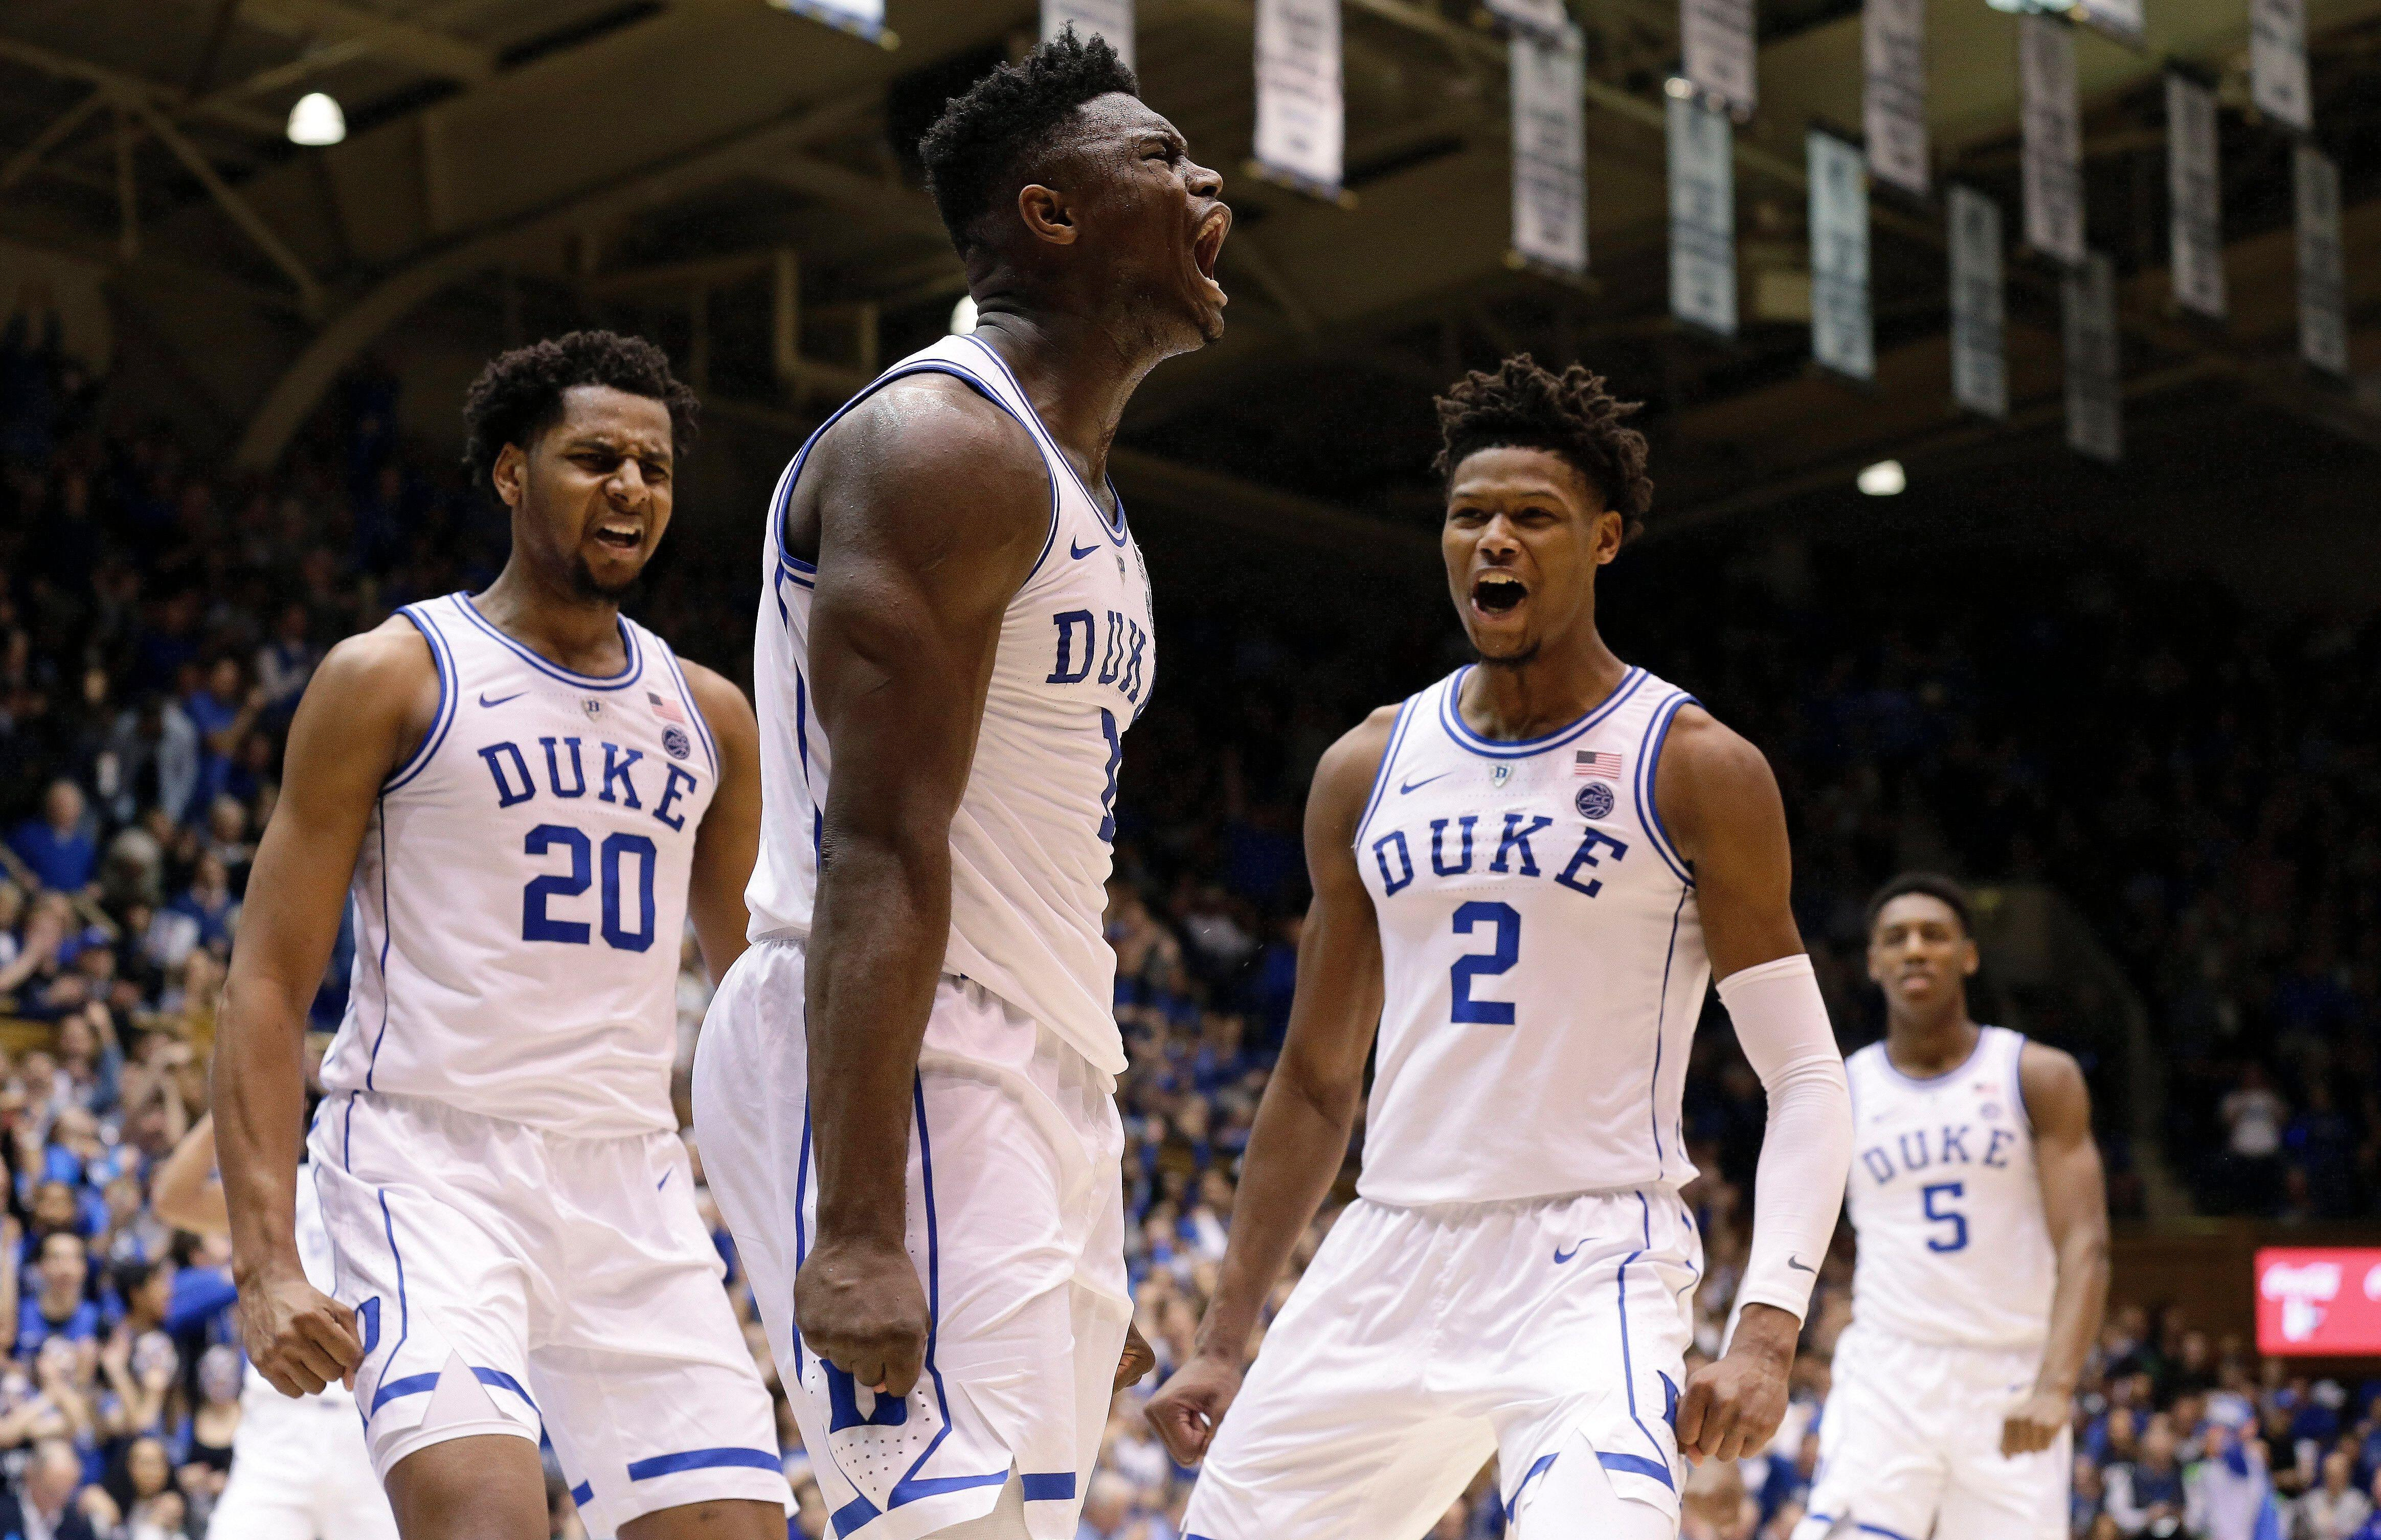 c6635a1853bf NBA draft  Cam Reddish believes hype for Zion Williamson was  unfair